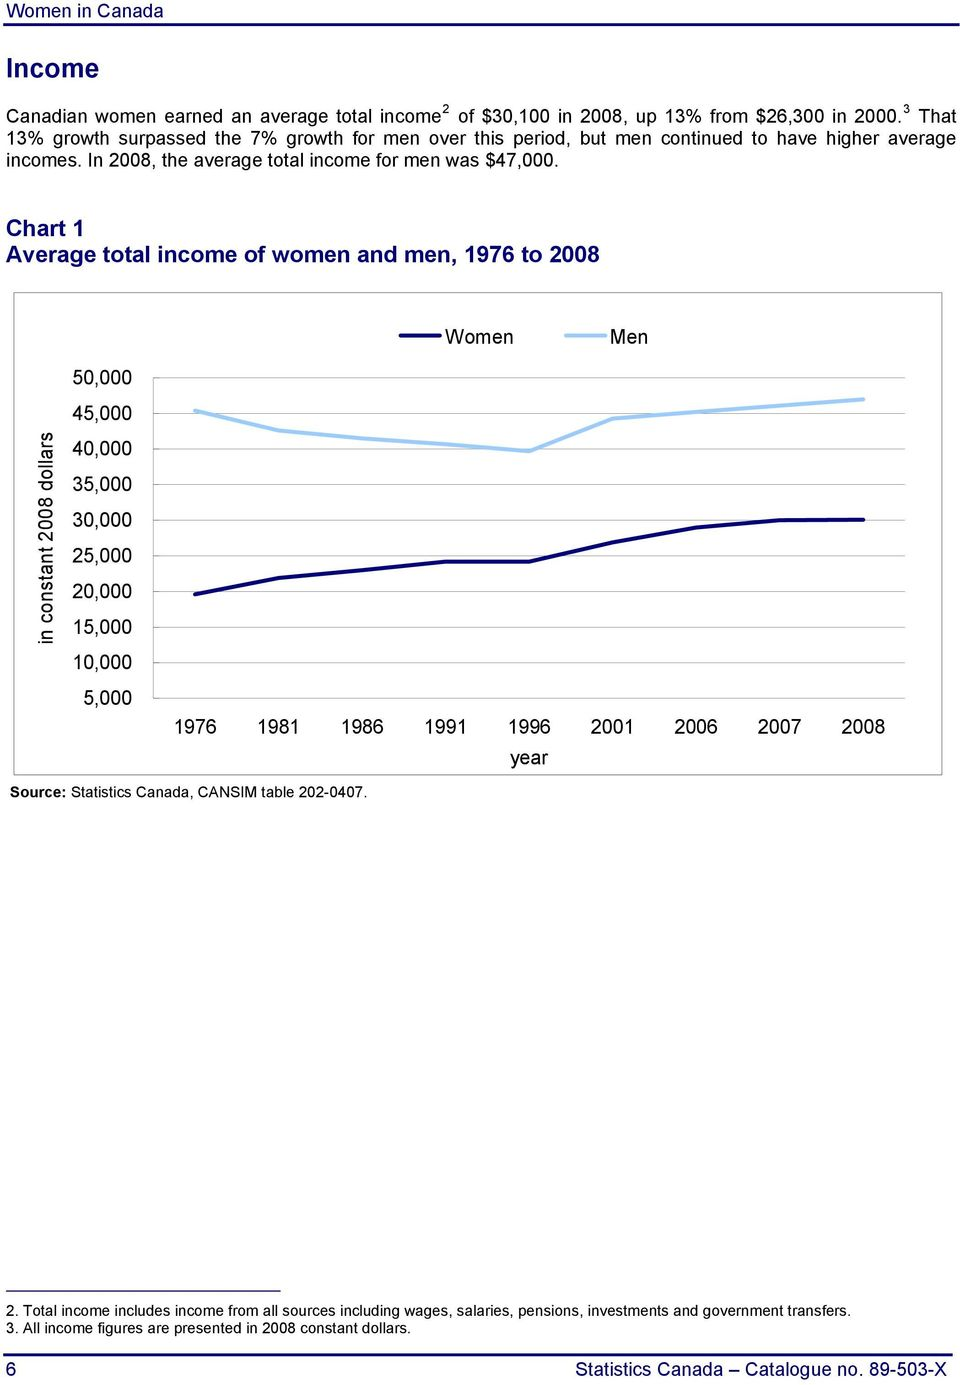 Chart 1 Average total income of women and men, 1976 to 2008 Women Men in constant 2008 dollars 50,000 45,000 40,000 35,000 30,000 25,000 20,000 15,000 10,000 5,000 1976 1981 1986 1991 1996 2001